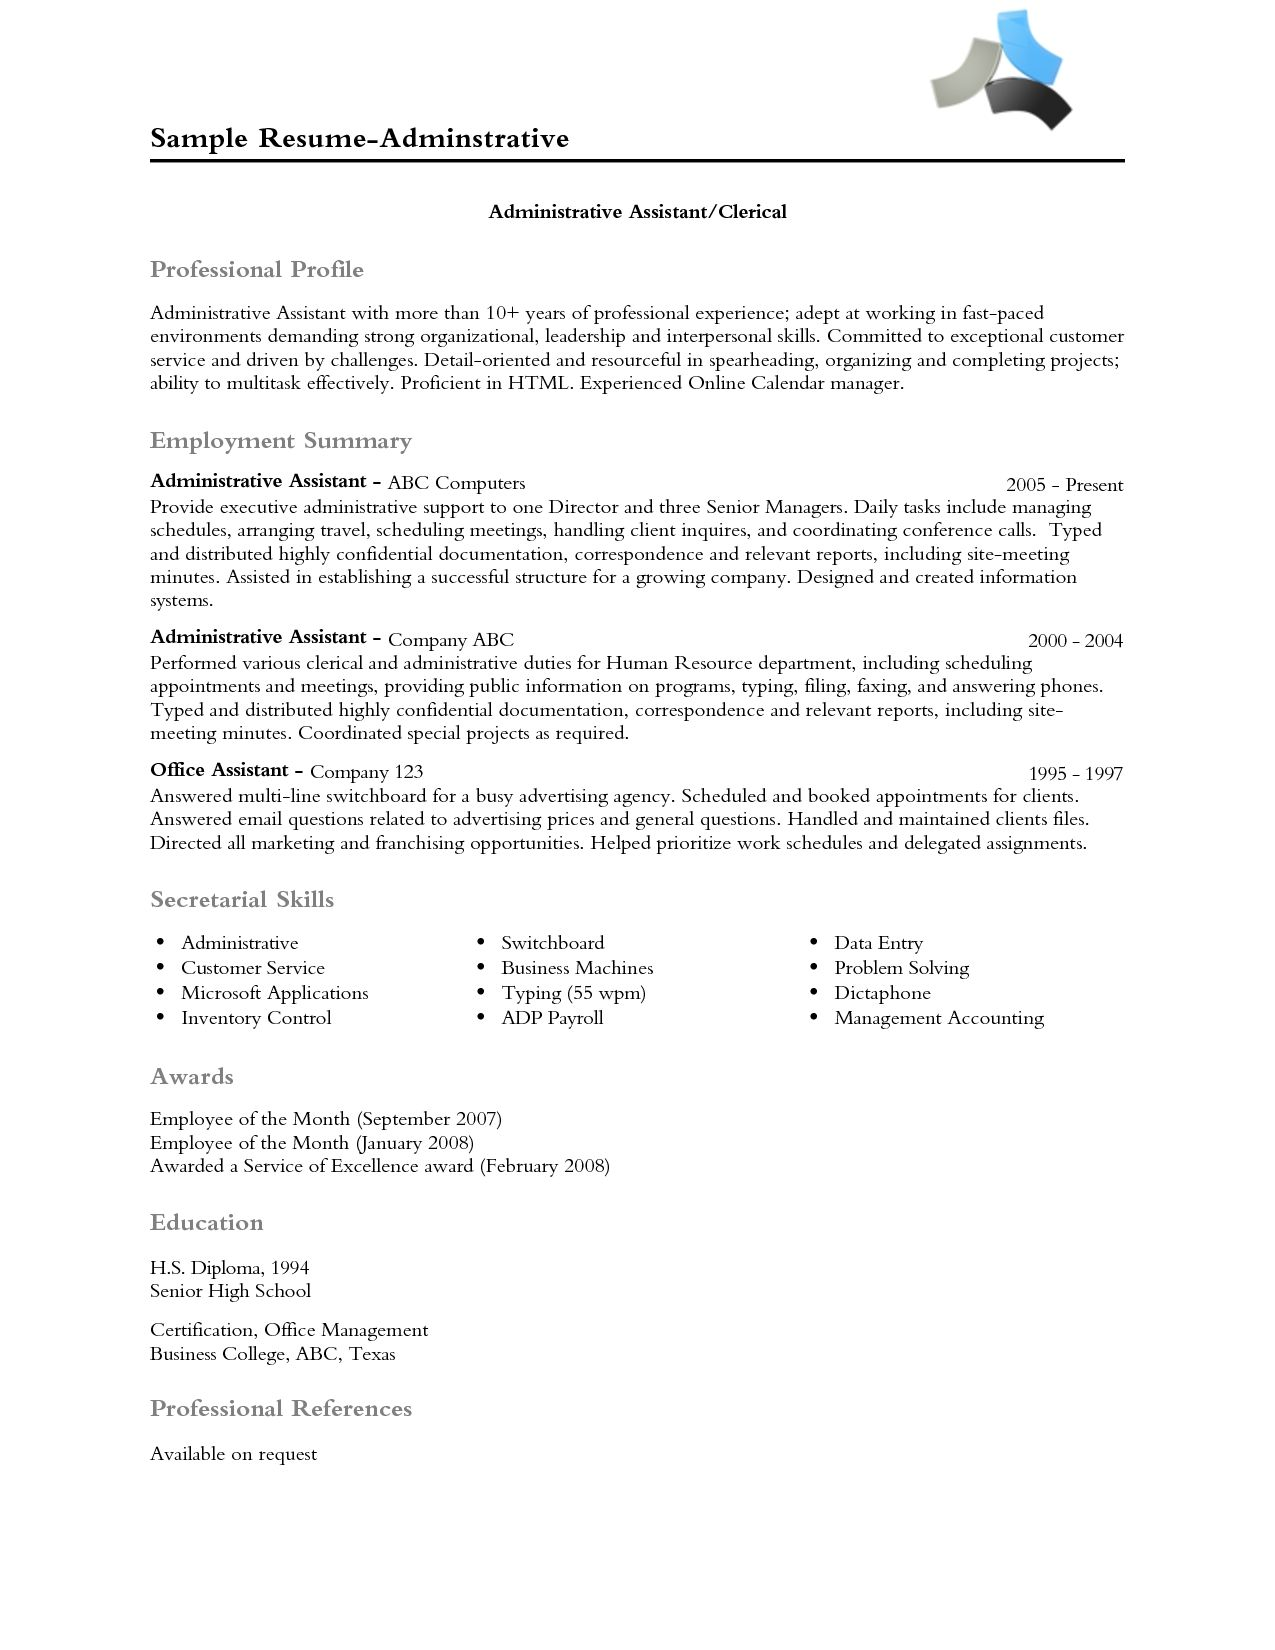 Example Of Professional Resume Resume Professional Profile Examples Professional Profile Examples